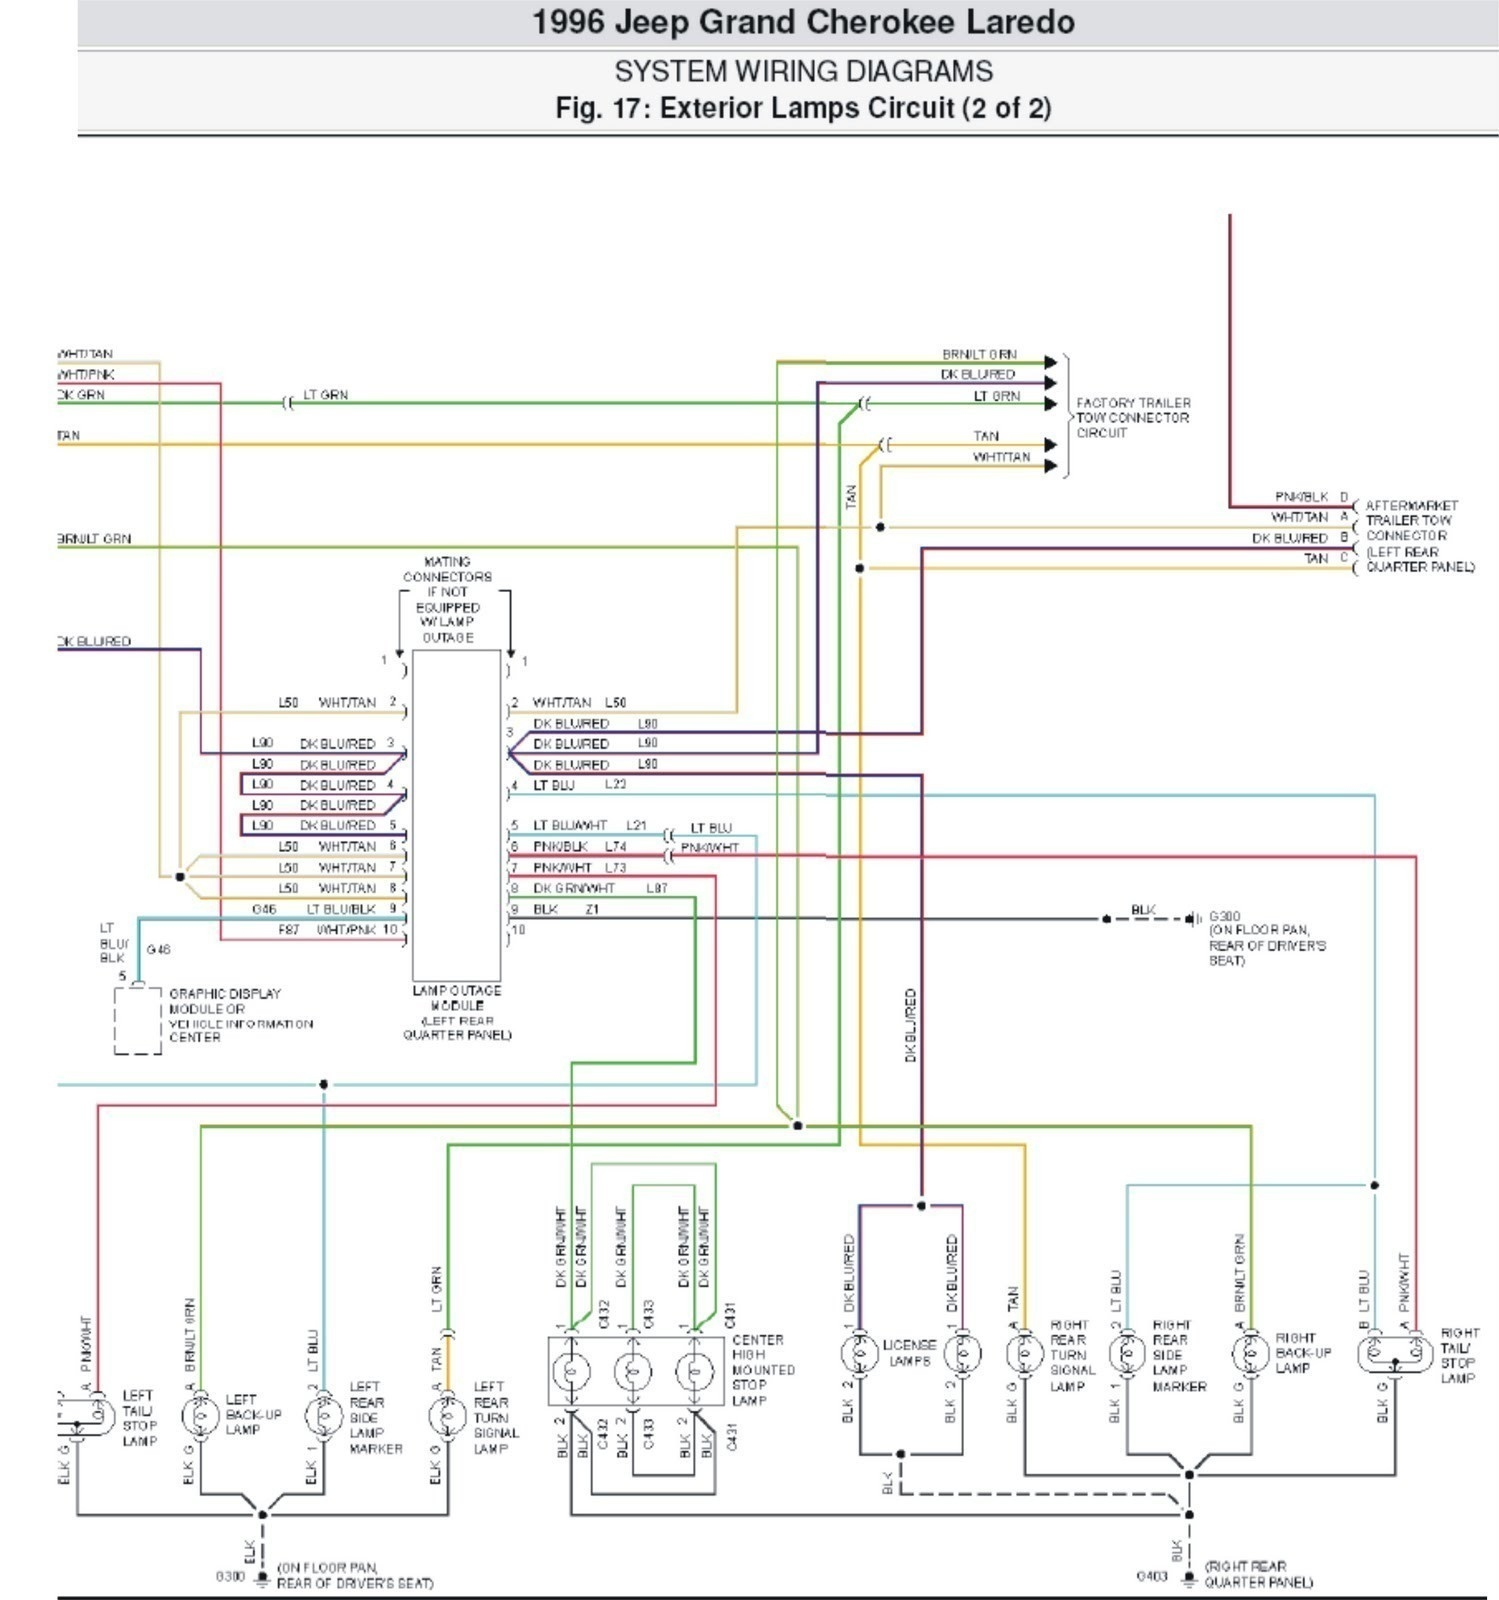 jeep grand cherokee wiring diagram Download-1995 Jeep Grand Cherokee Headlight Wiring Diagram Best 1999 Jeep Grand Cherokee Wiring Diagram Download Refrence 1-j